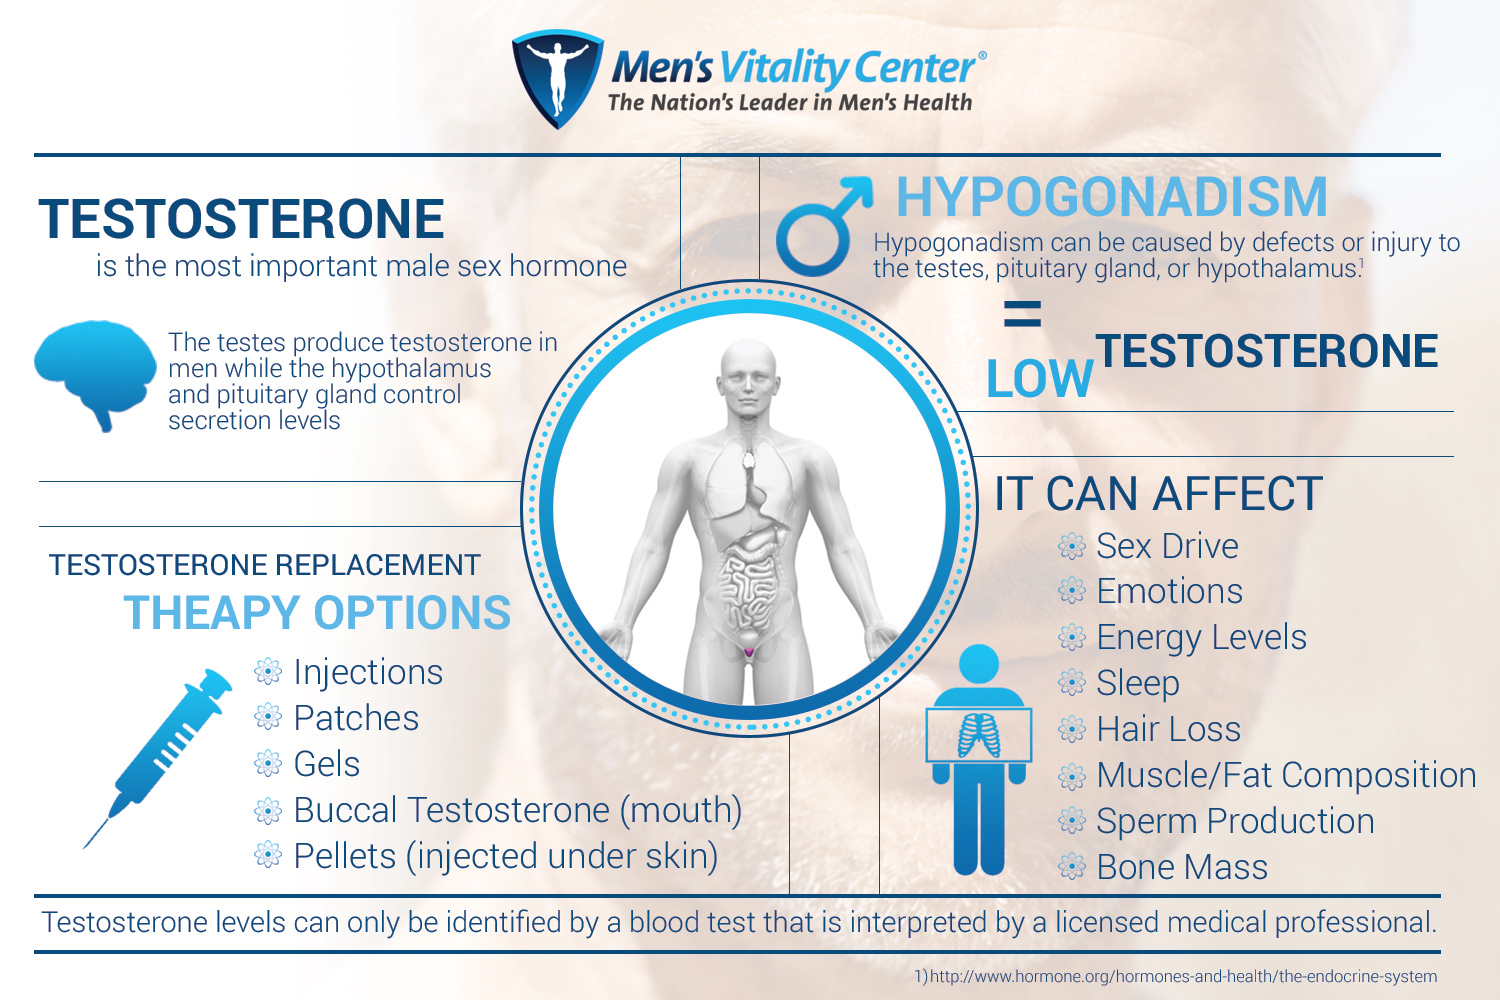 Men's Health Services in Tucson-Testosterone Replacement Therapy-Men's Vitality Center